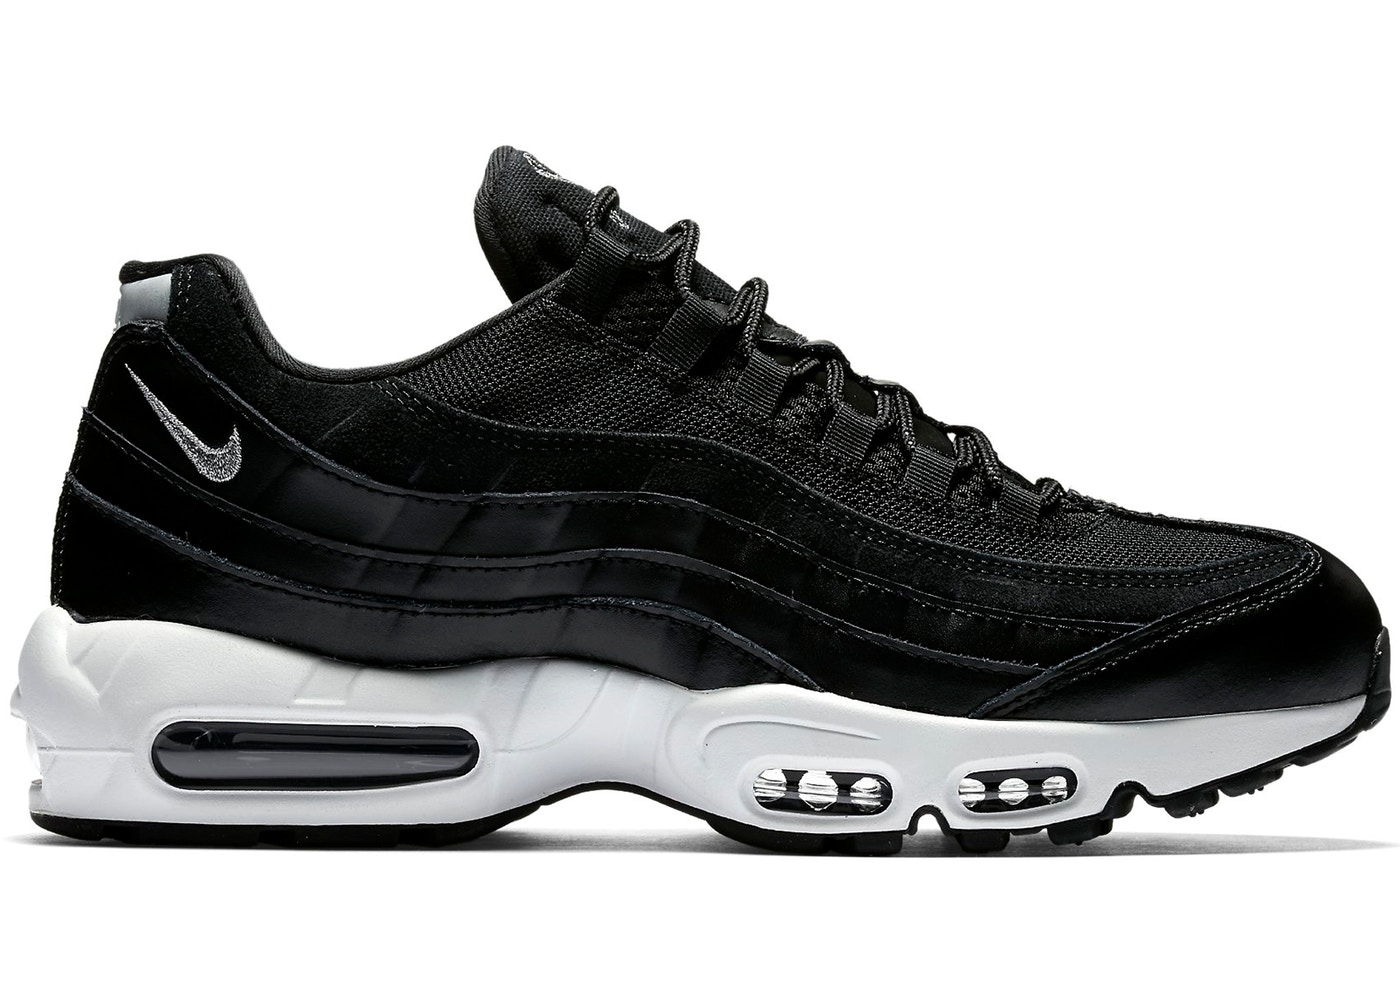 43a932a9c8892 Air Max 95 Rebel Skulls - 538416-008